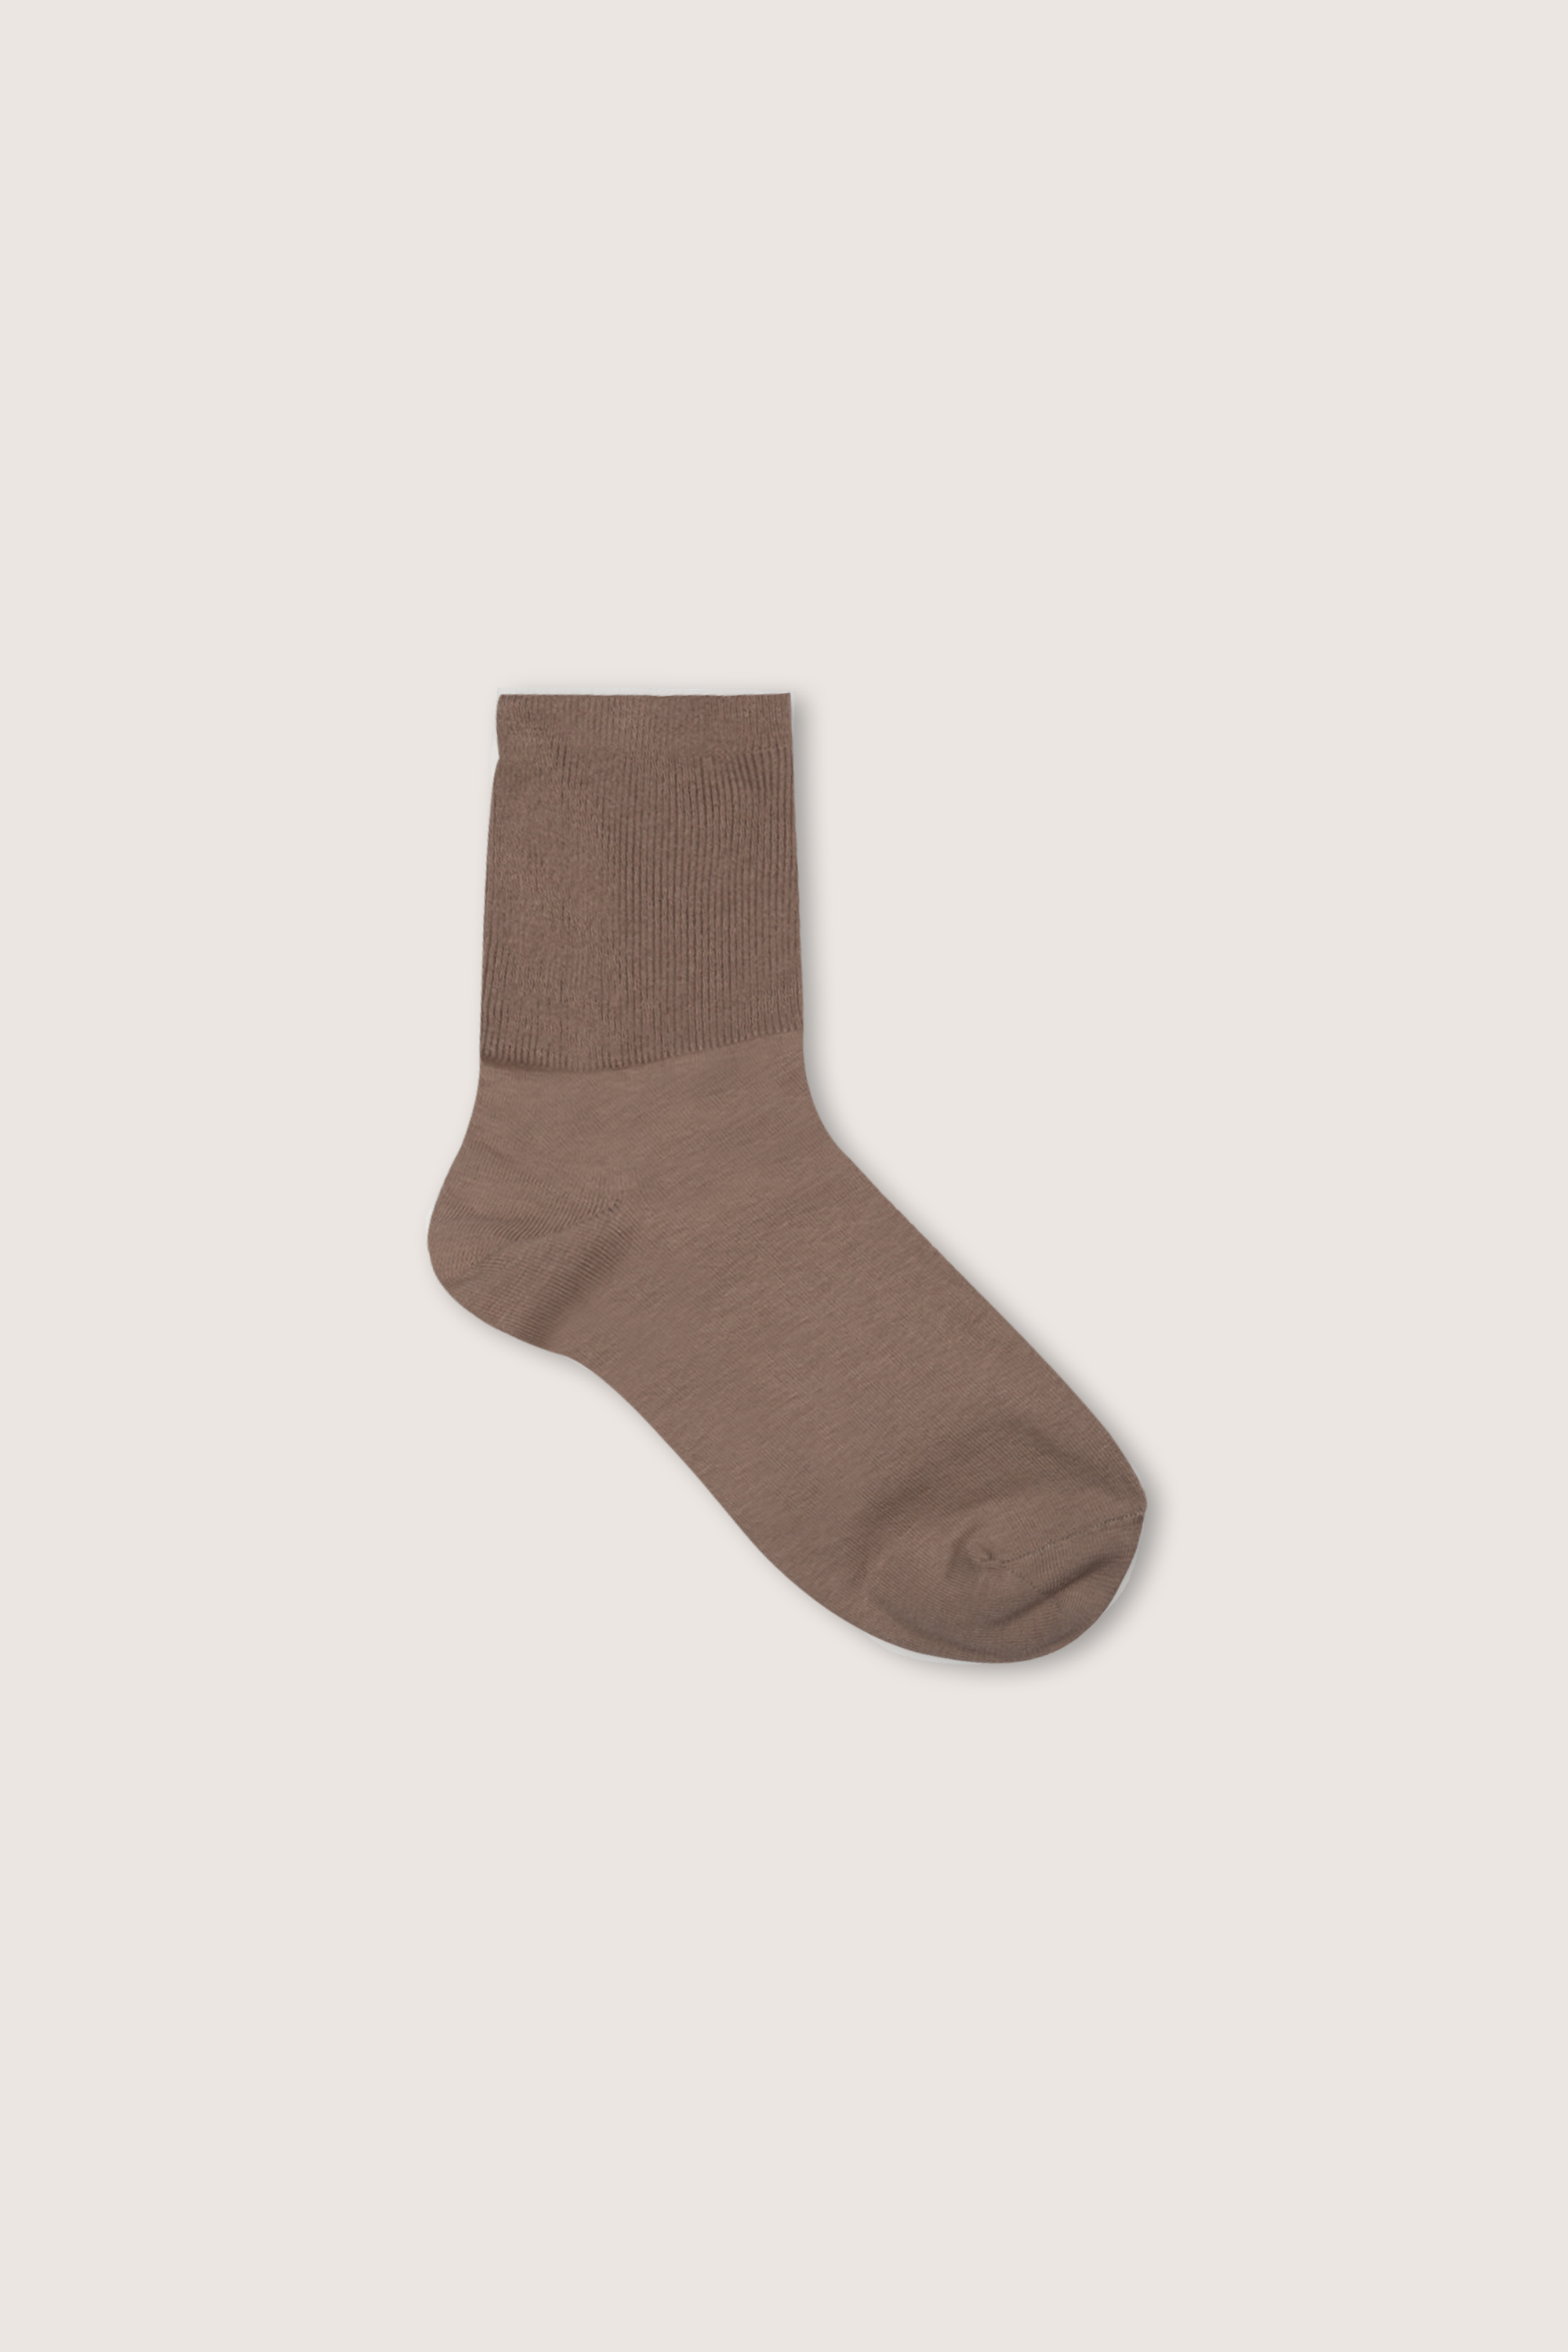 Sock H062 Brown 4